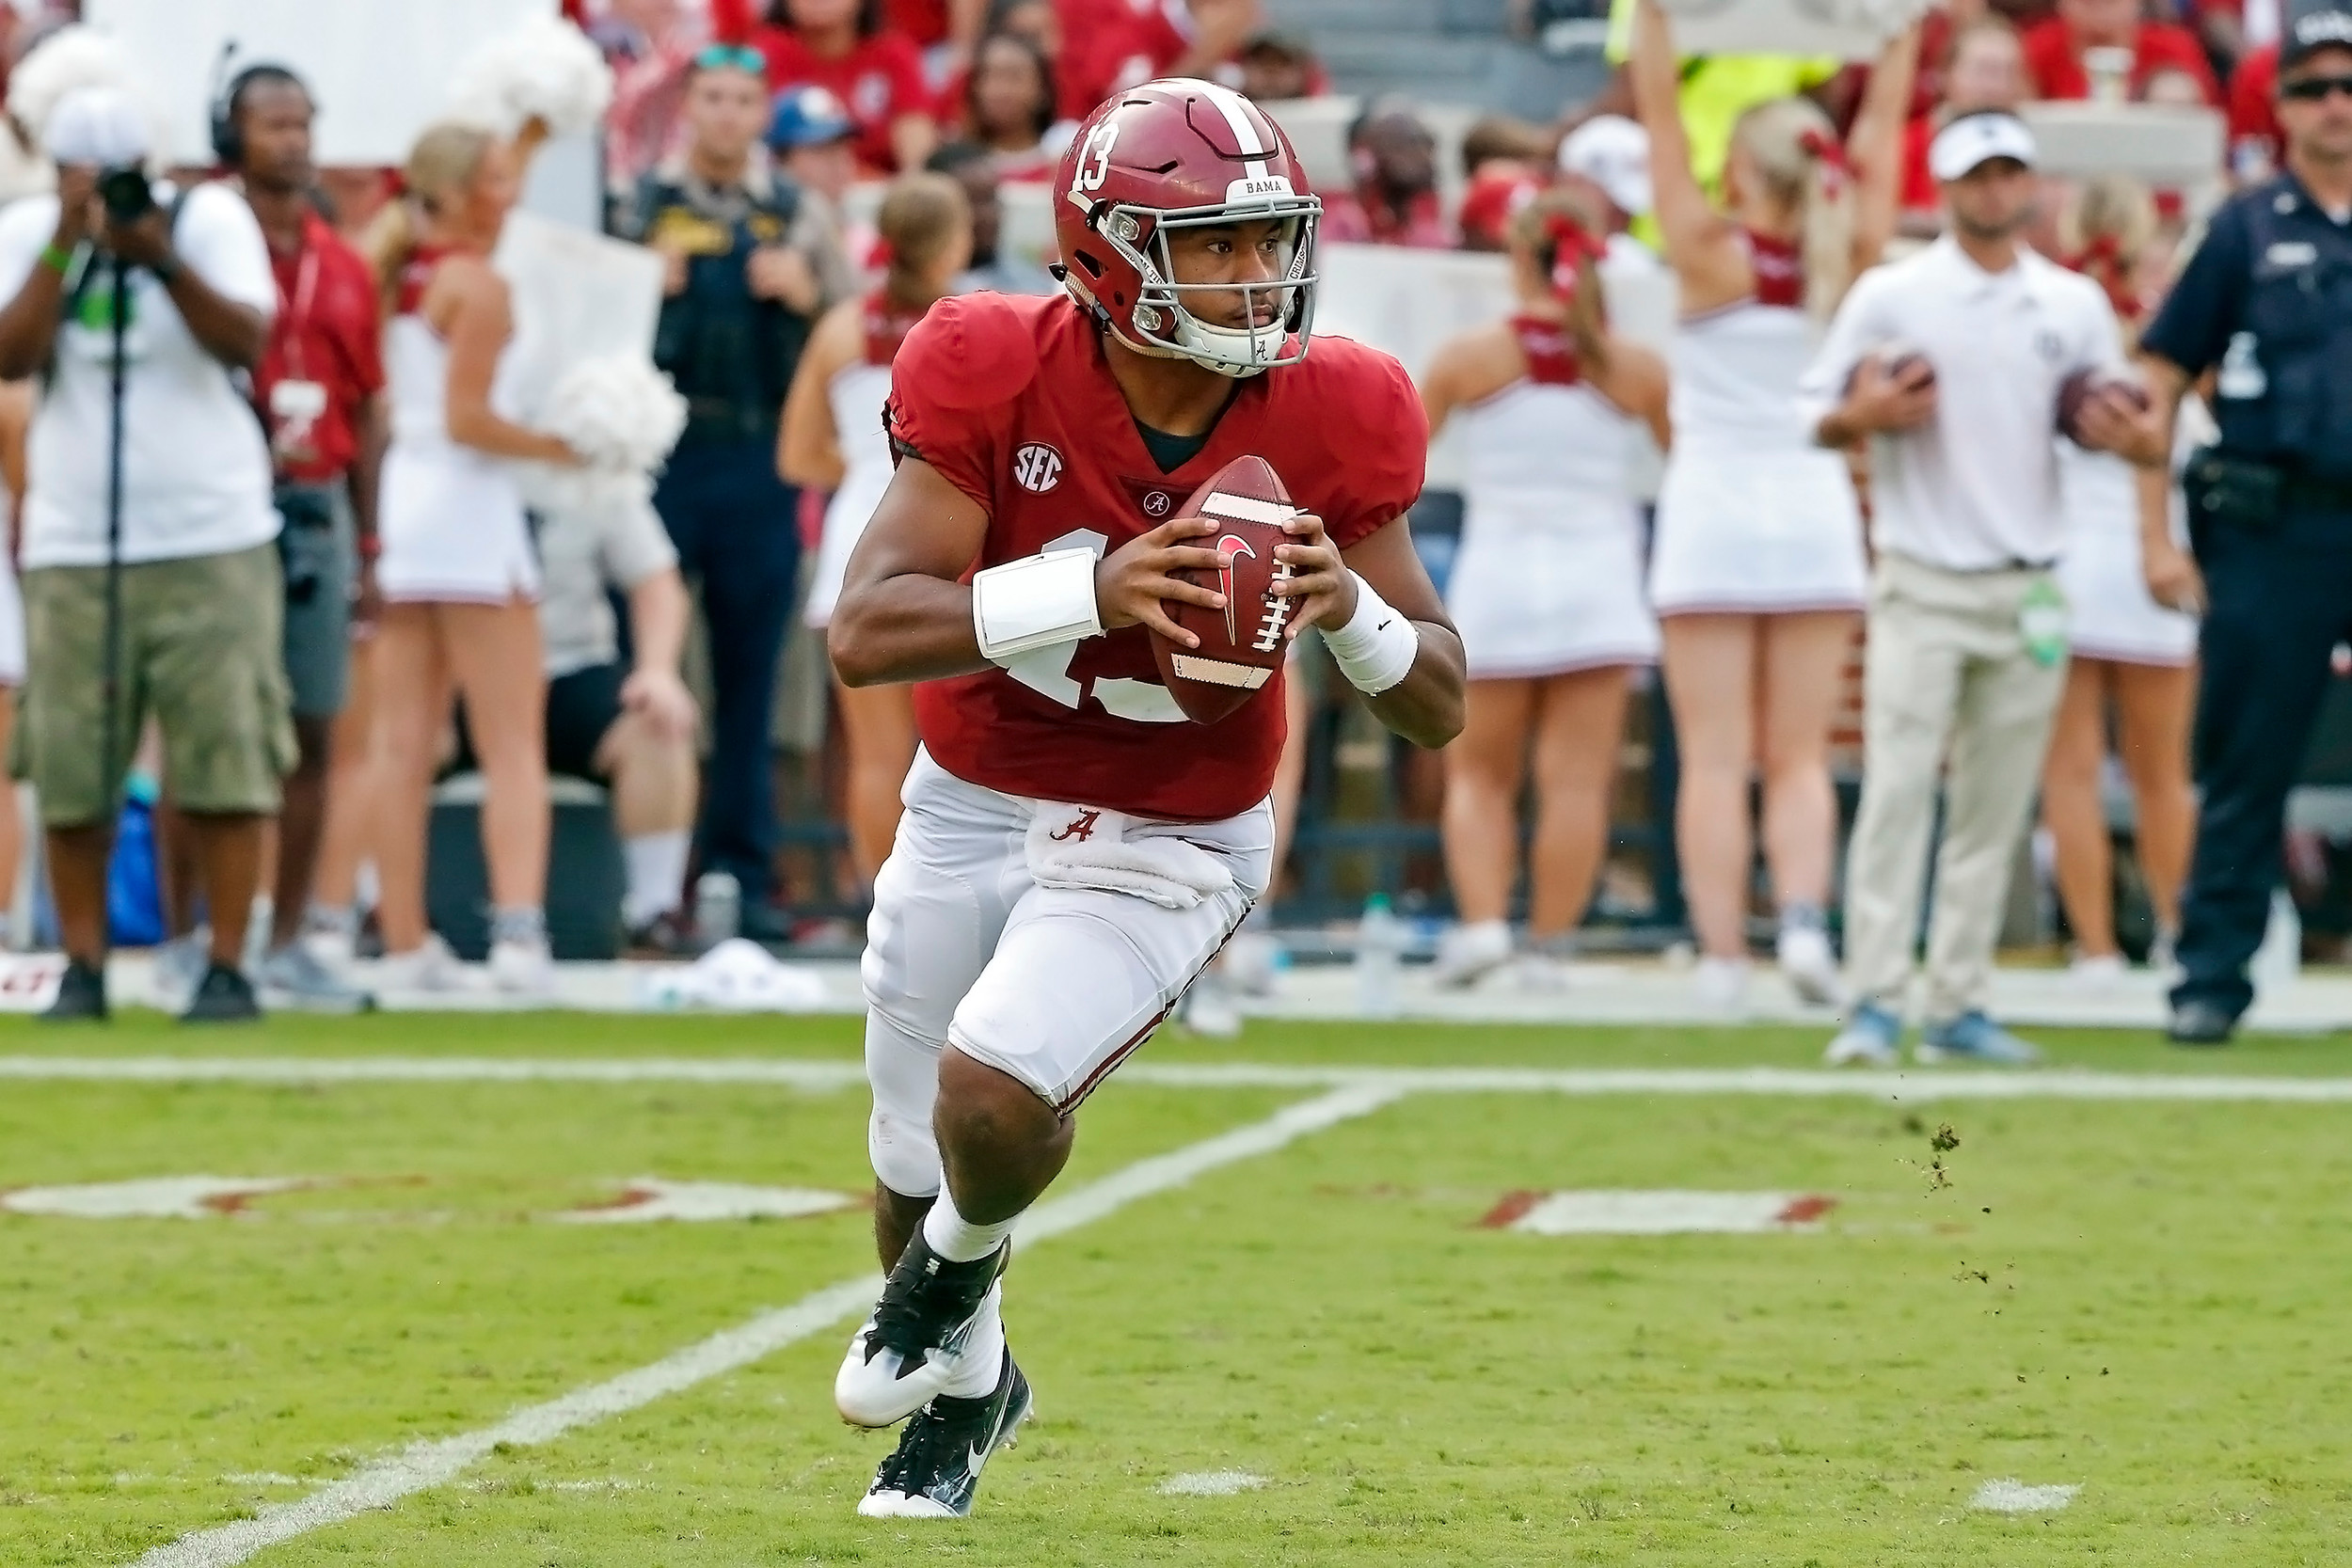 Alabama Crimson Tide quarterback Tua Tagovailoa (13) looks for a receiver during the game with against the Texas A&M Aggies at Bryant-Denny Stadium.  Jason Clark / Daily Mountain Eagle